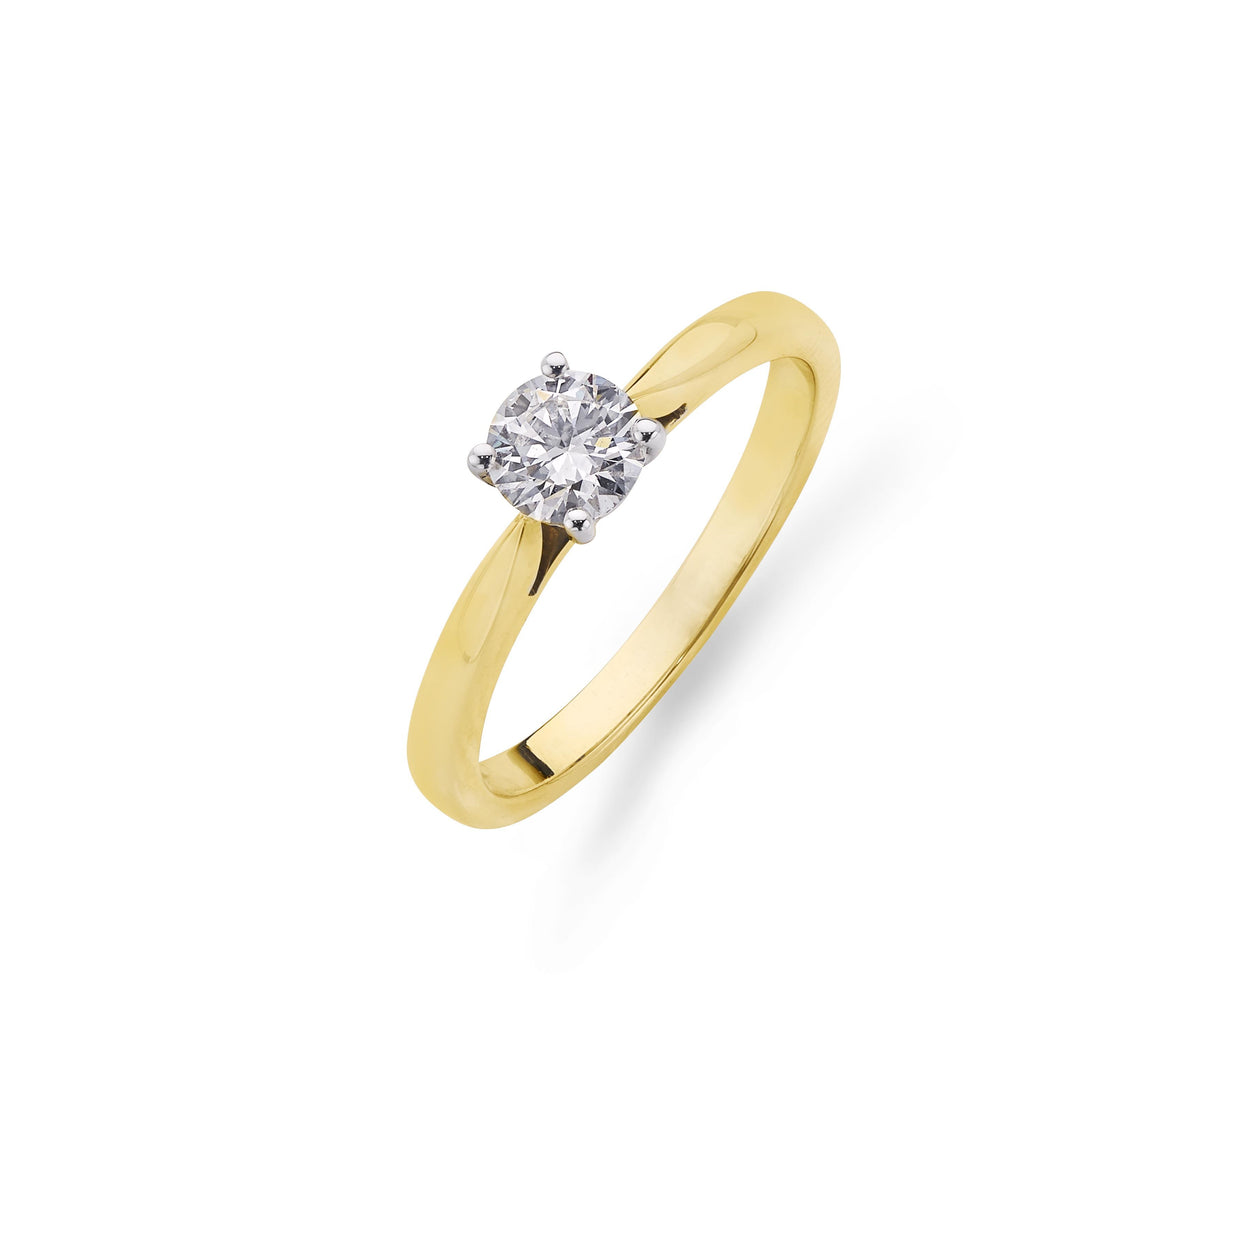 Round Brilliant-Cut Diamond Engagement Ring in Yellow Gold - Hamilton & Inches